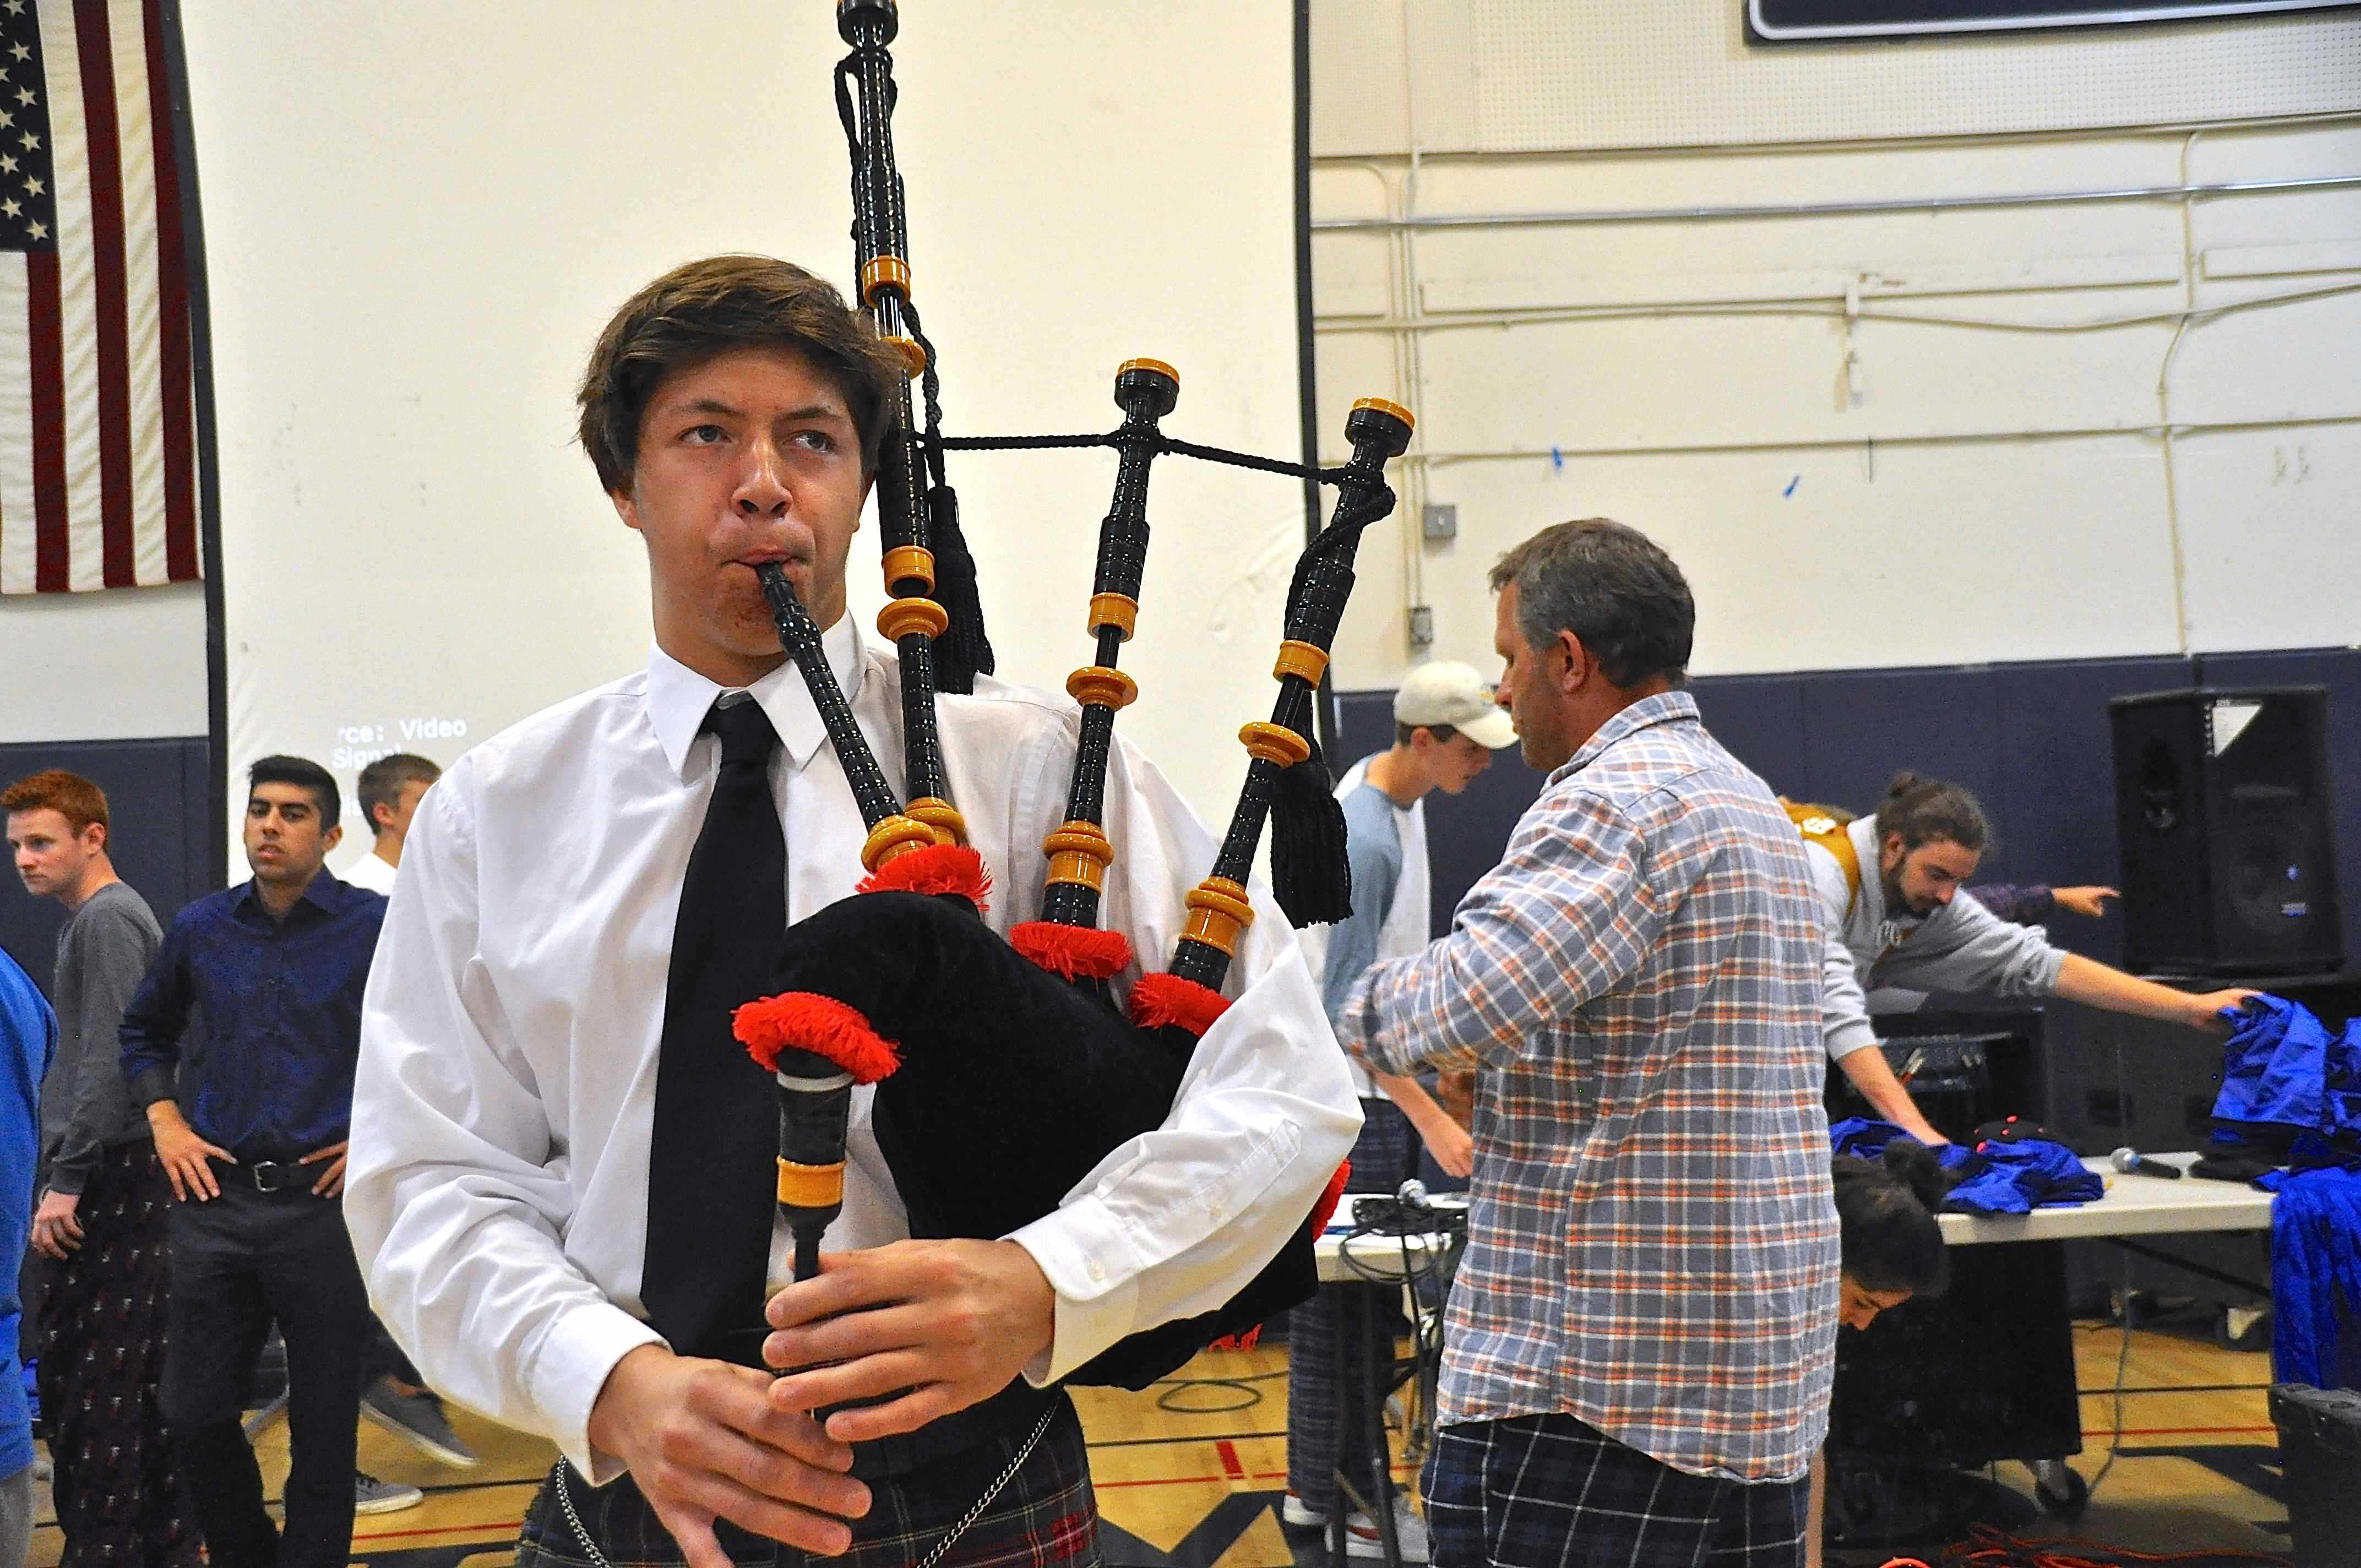 Junior+Adrian+Putes+plays+the+bagpipes+as+students+pour+into+the+gym.+